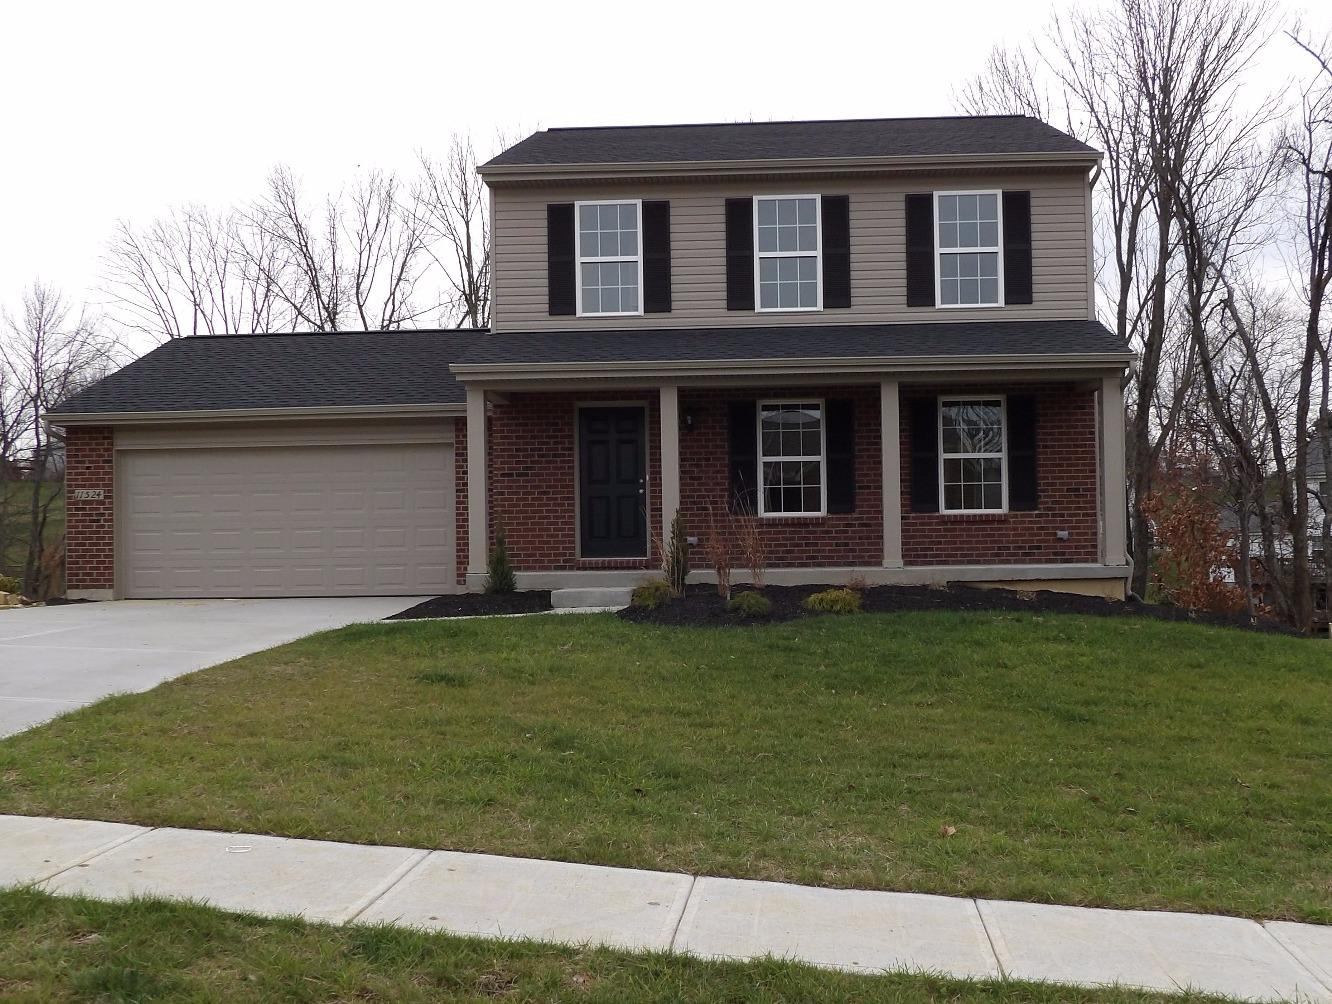 Photo 1 for 11524 Ridgetop Dr Walton, KY 41094